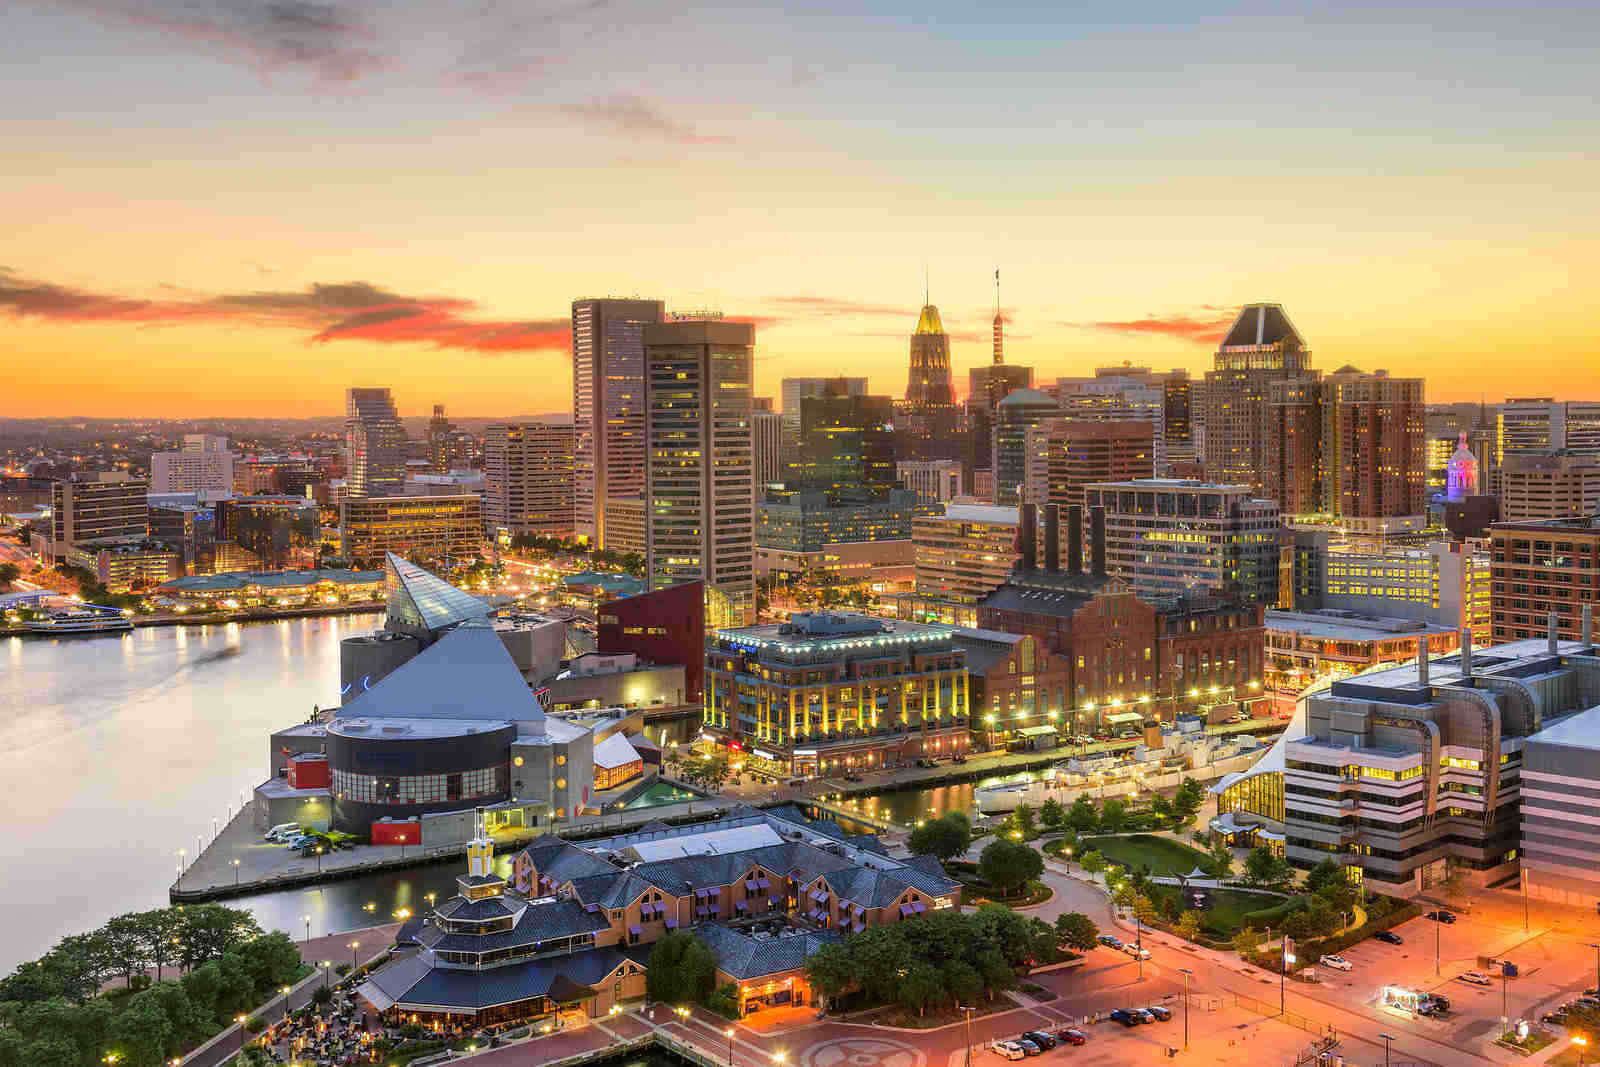 You can move to Washington DC but choose to live in beautiful Baltimore, MD